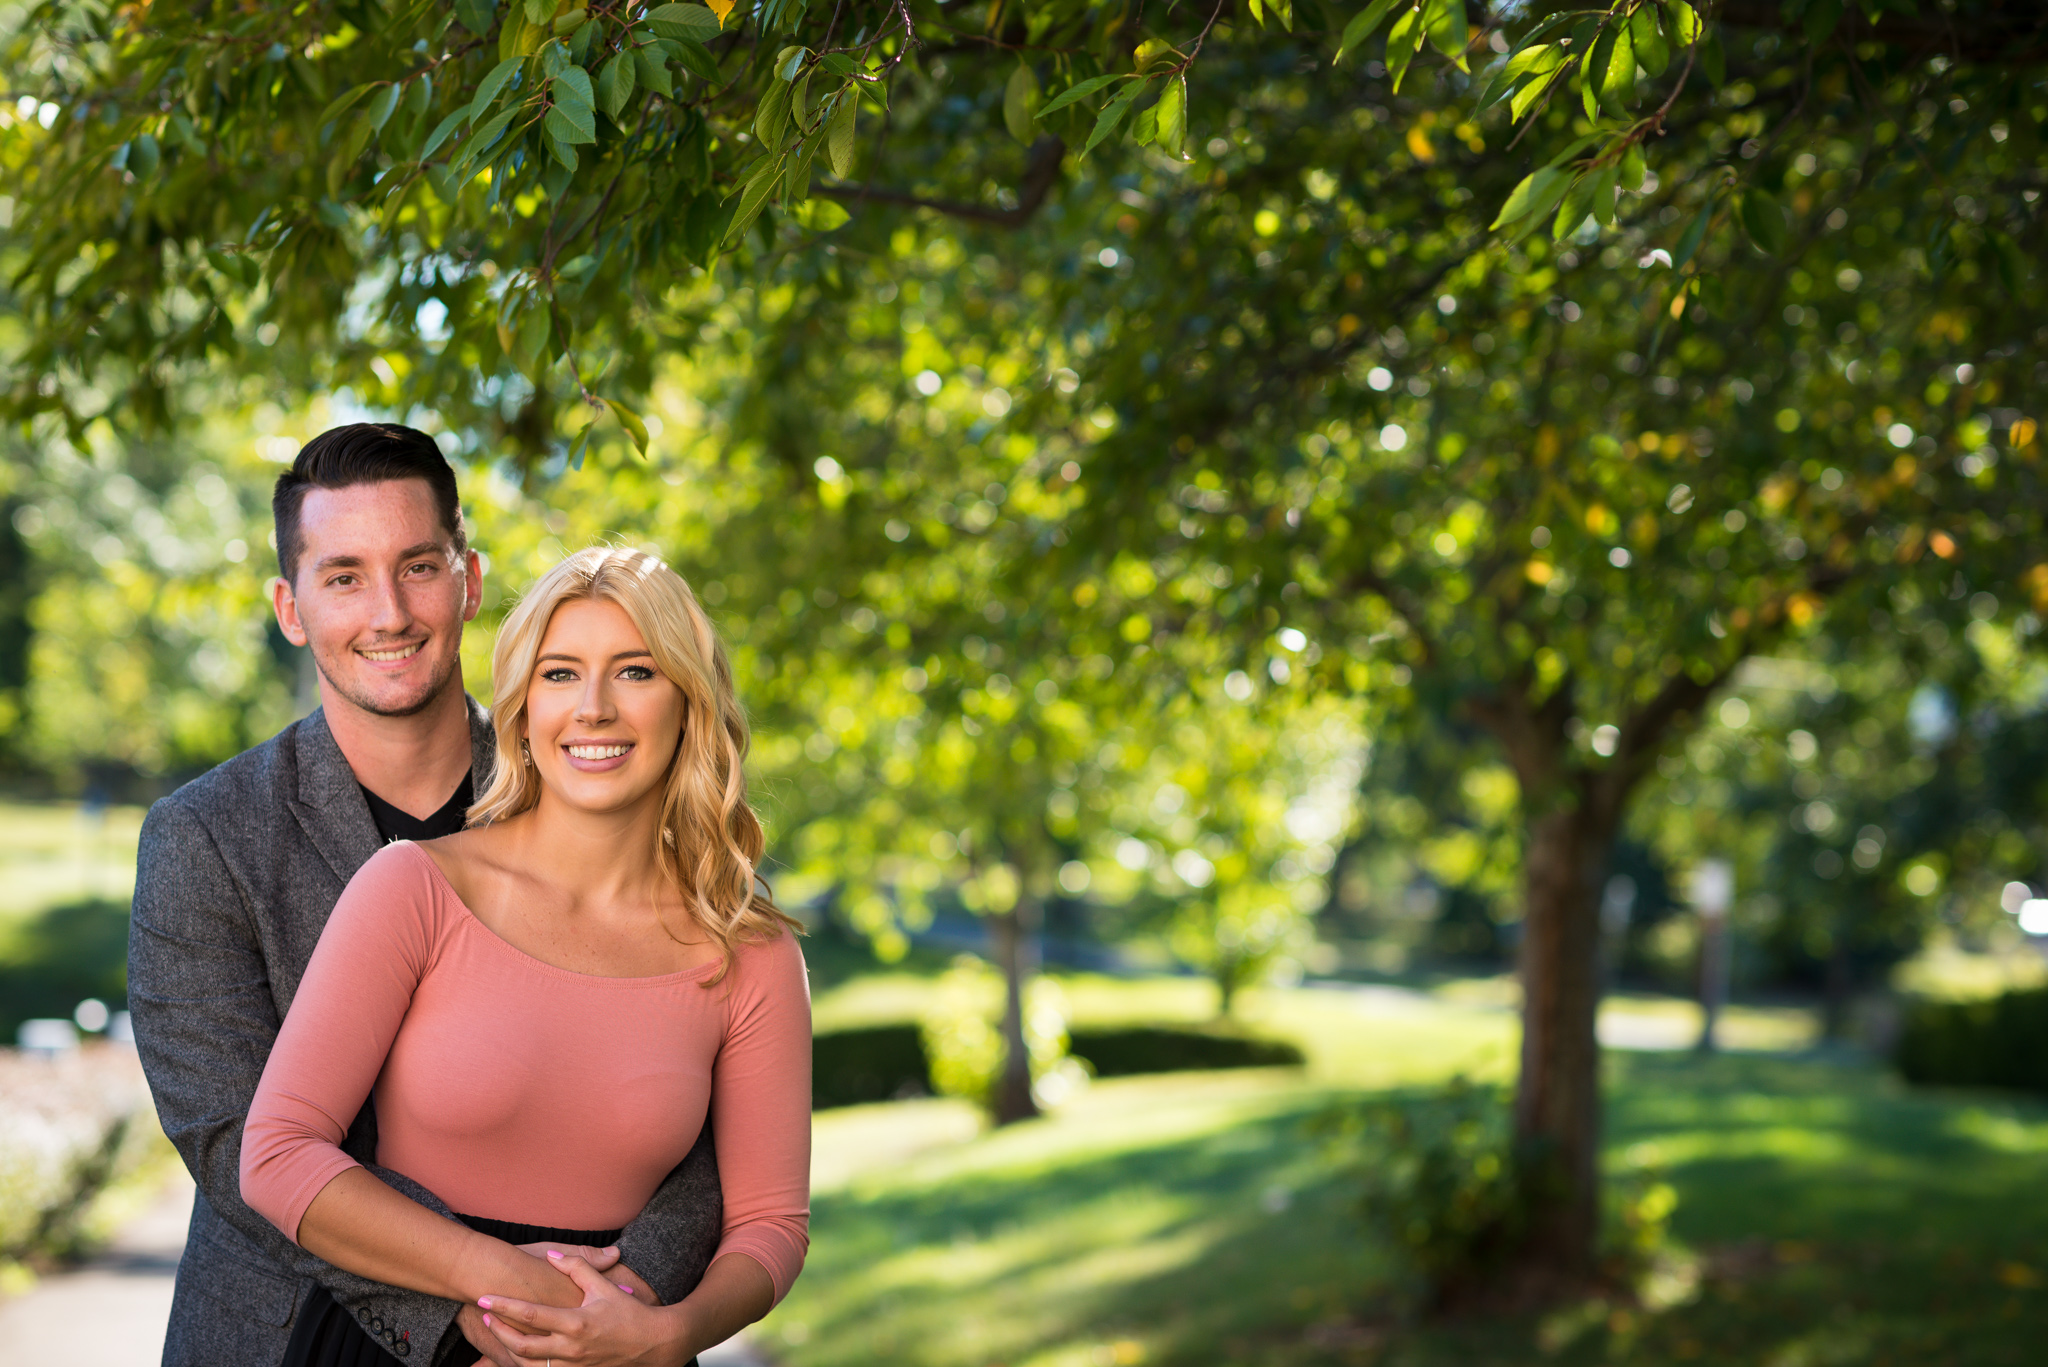 Mindy-Engagement-photography-wedding-photographer-northeast-PA-Scranton-Poconos-6.jpg